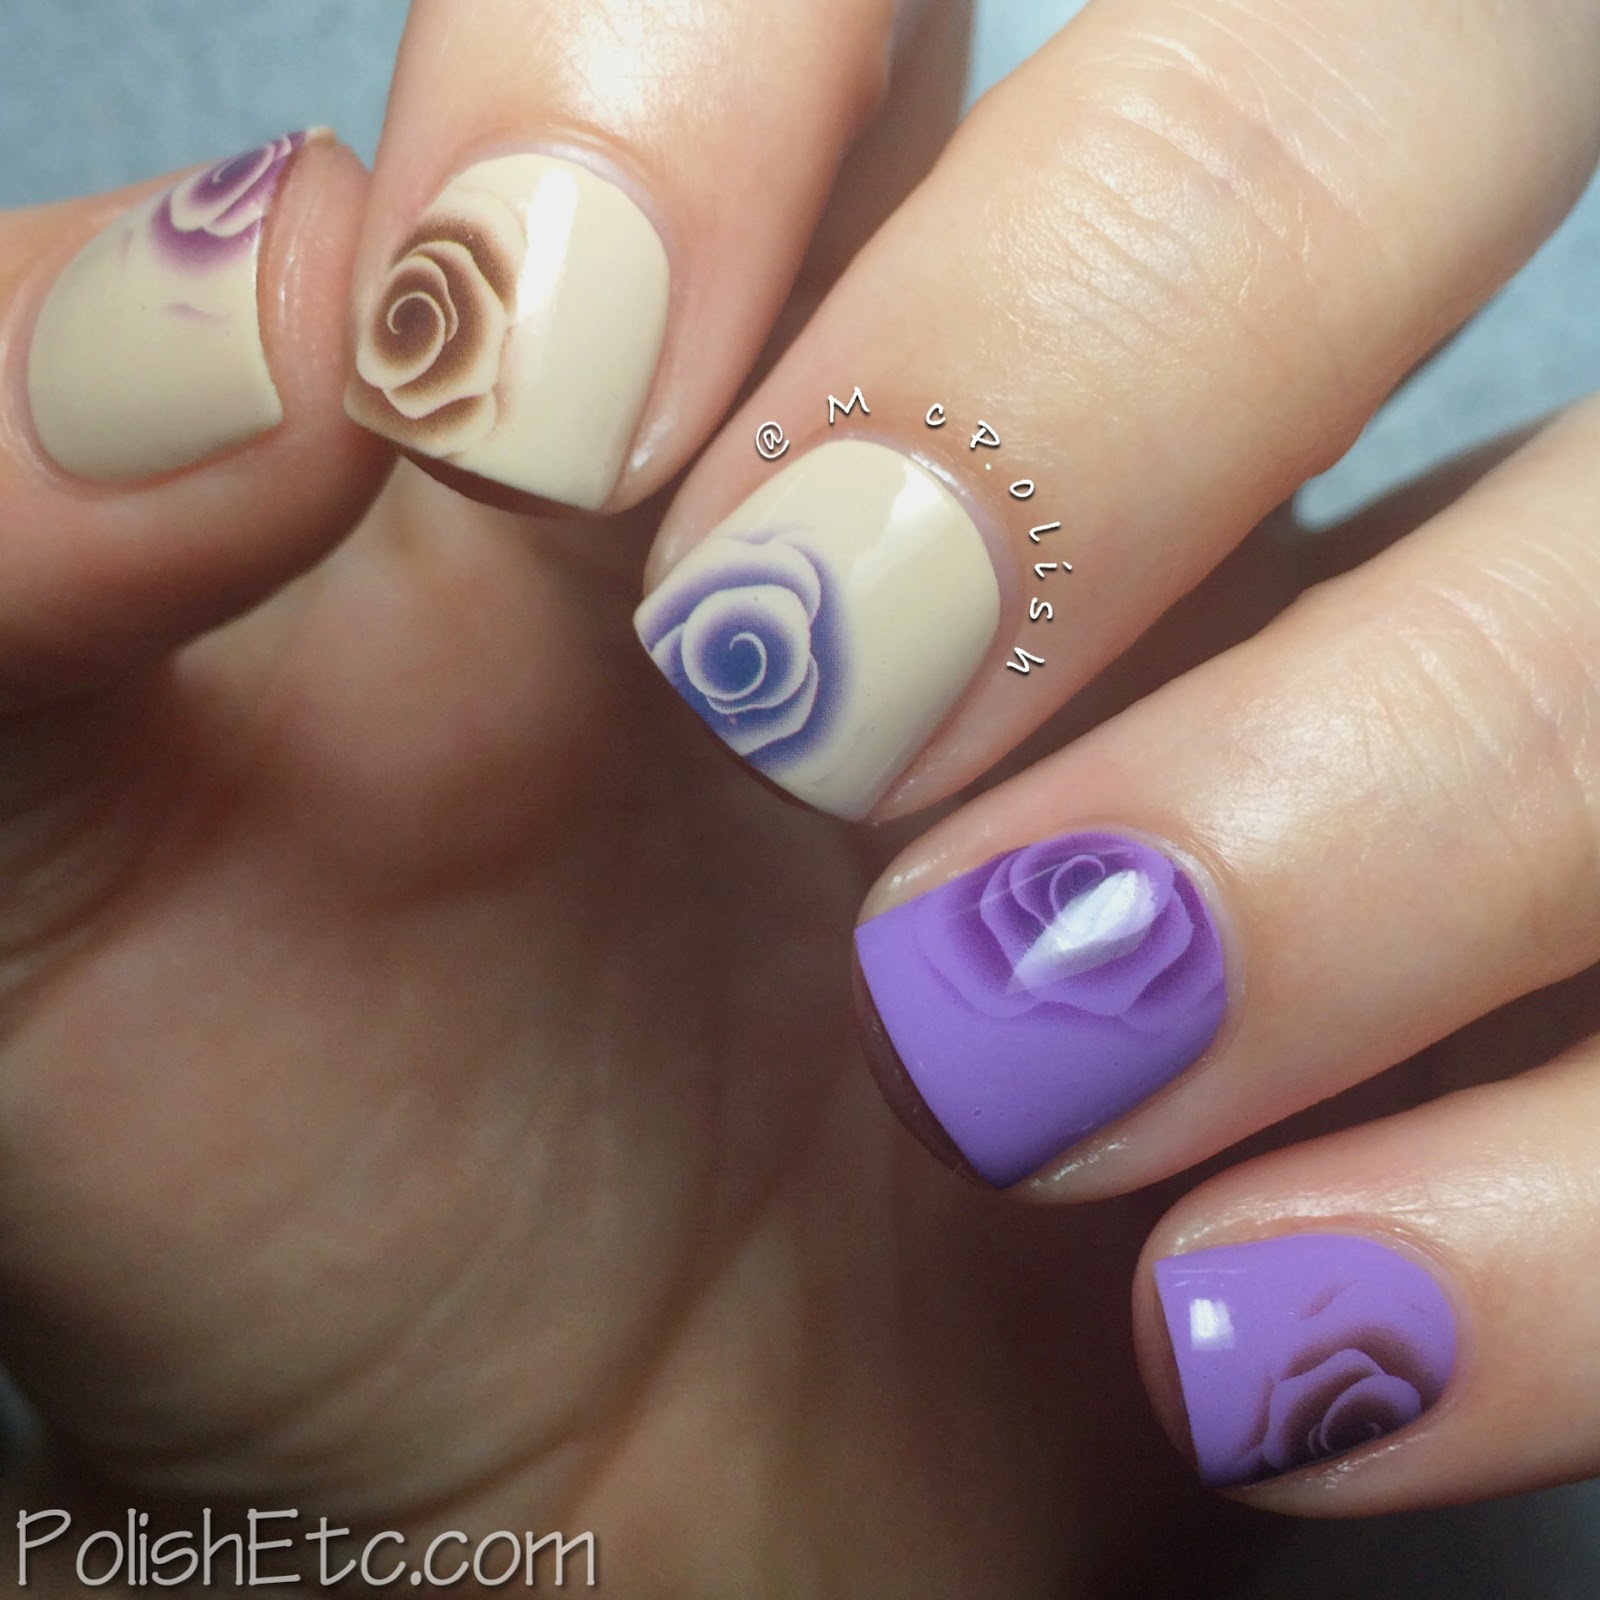 31 Day Nail Art Challenge - #31dc2014 - McPolish - FLOWERS